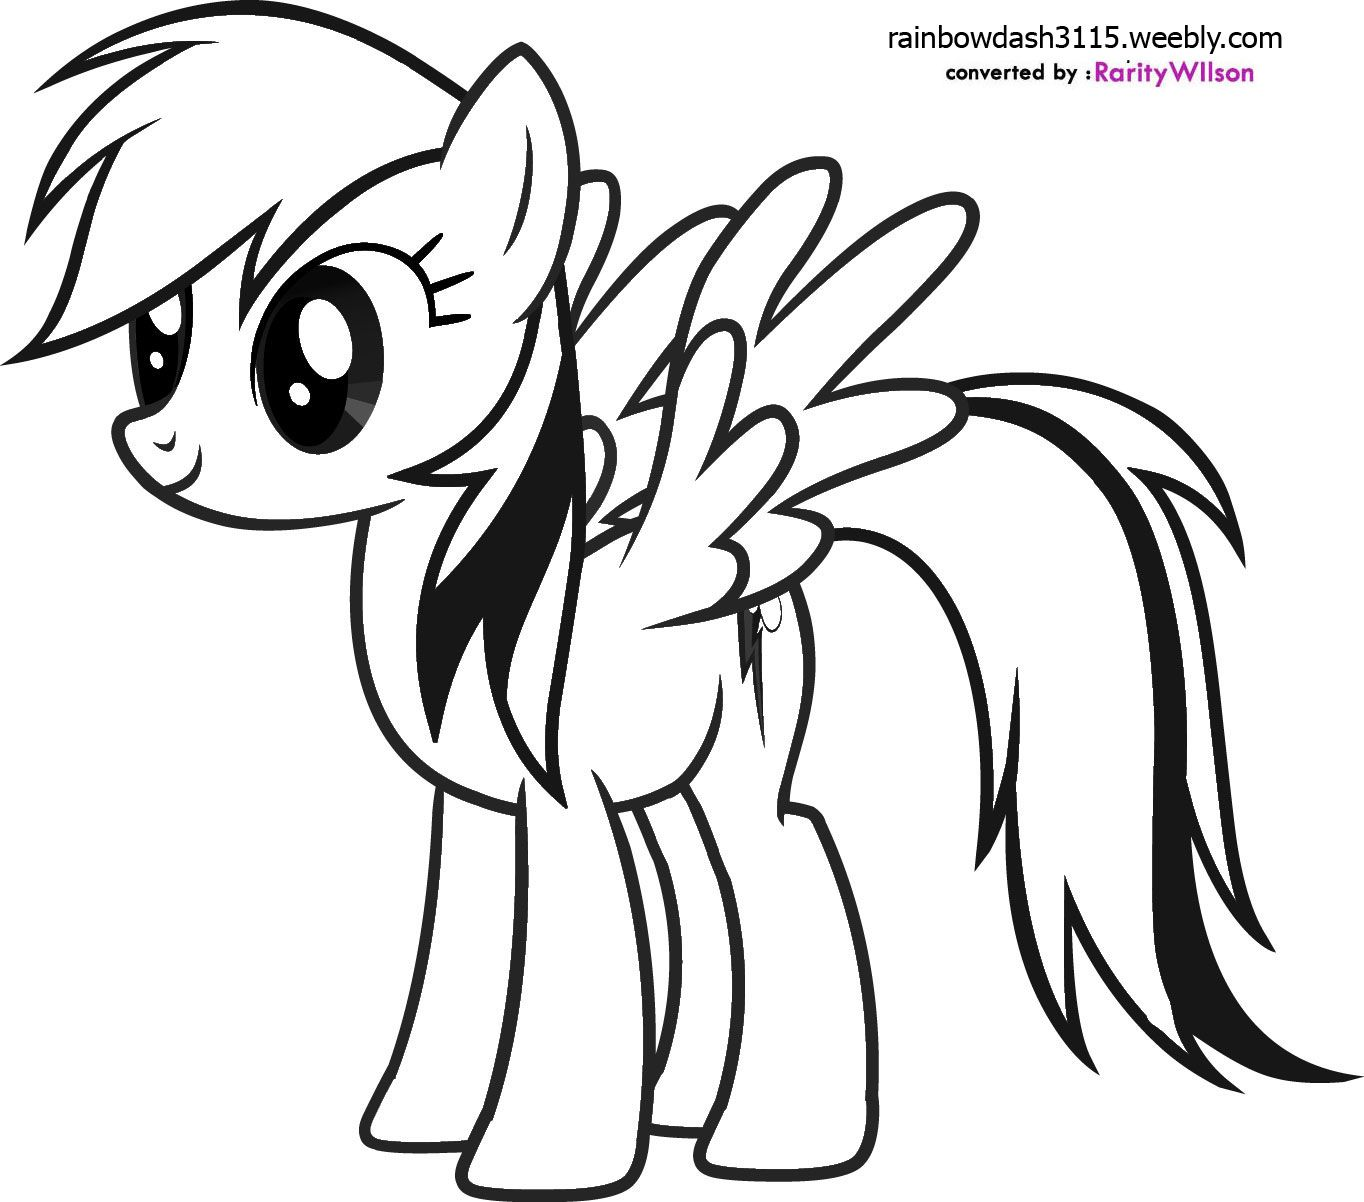 Rainbow Dash Coloring Page Just Finished Doing Mine My Little Pony Coloring My Little Pony Cartoon Pony